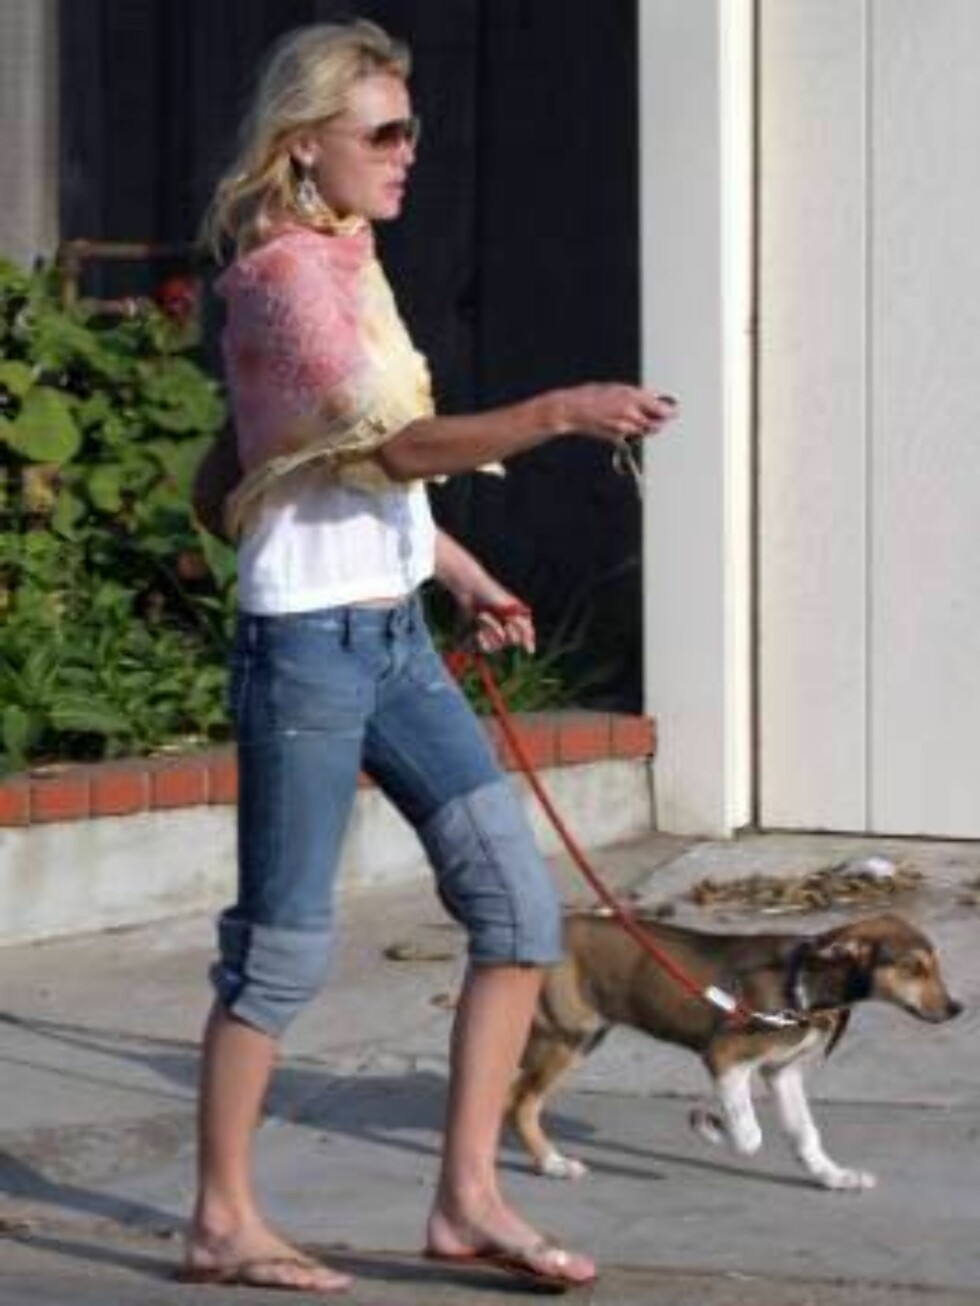 Orlando Bloom with girlfriend Kate Bosworth visiting Charlize Theron at her beach house in Malibu. Both took their dog on the beach. Orlando went swimming. June 6 2004 X17agency exclusive / ALL OVER PRESS Foto: All Over Press